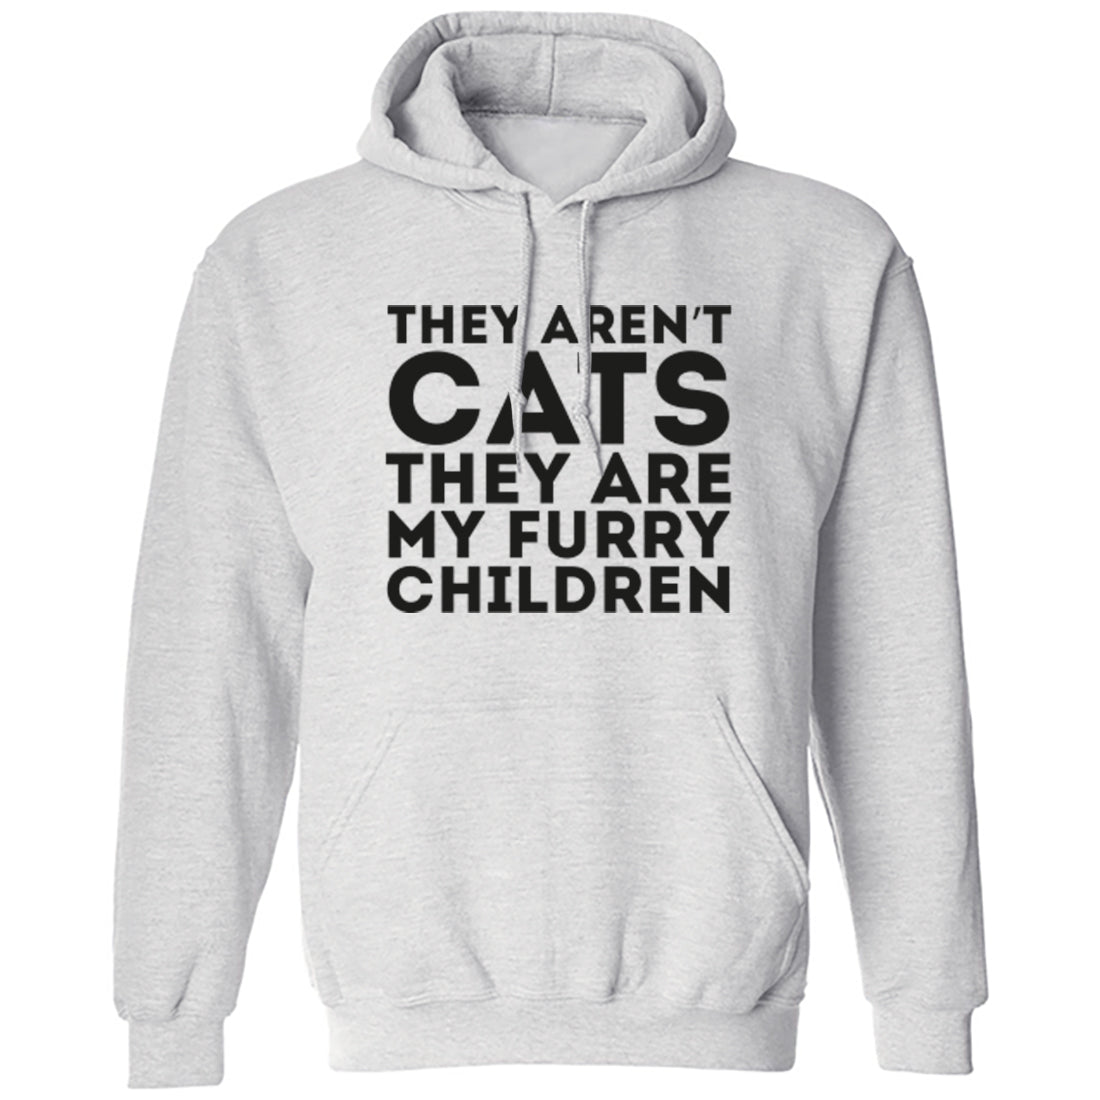 They Aren't Cats They Are My Furry Children Unisex Hoodie K1826 - Illustrated Identity Ltd.